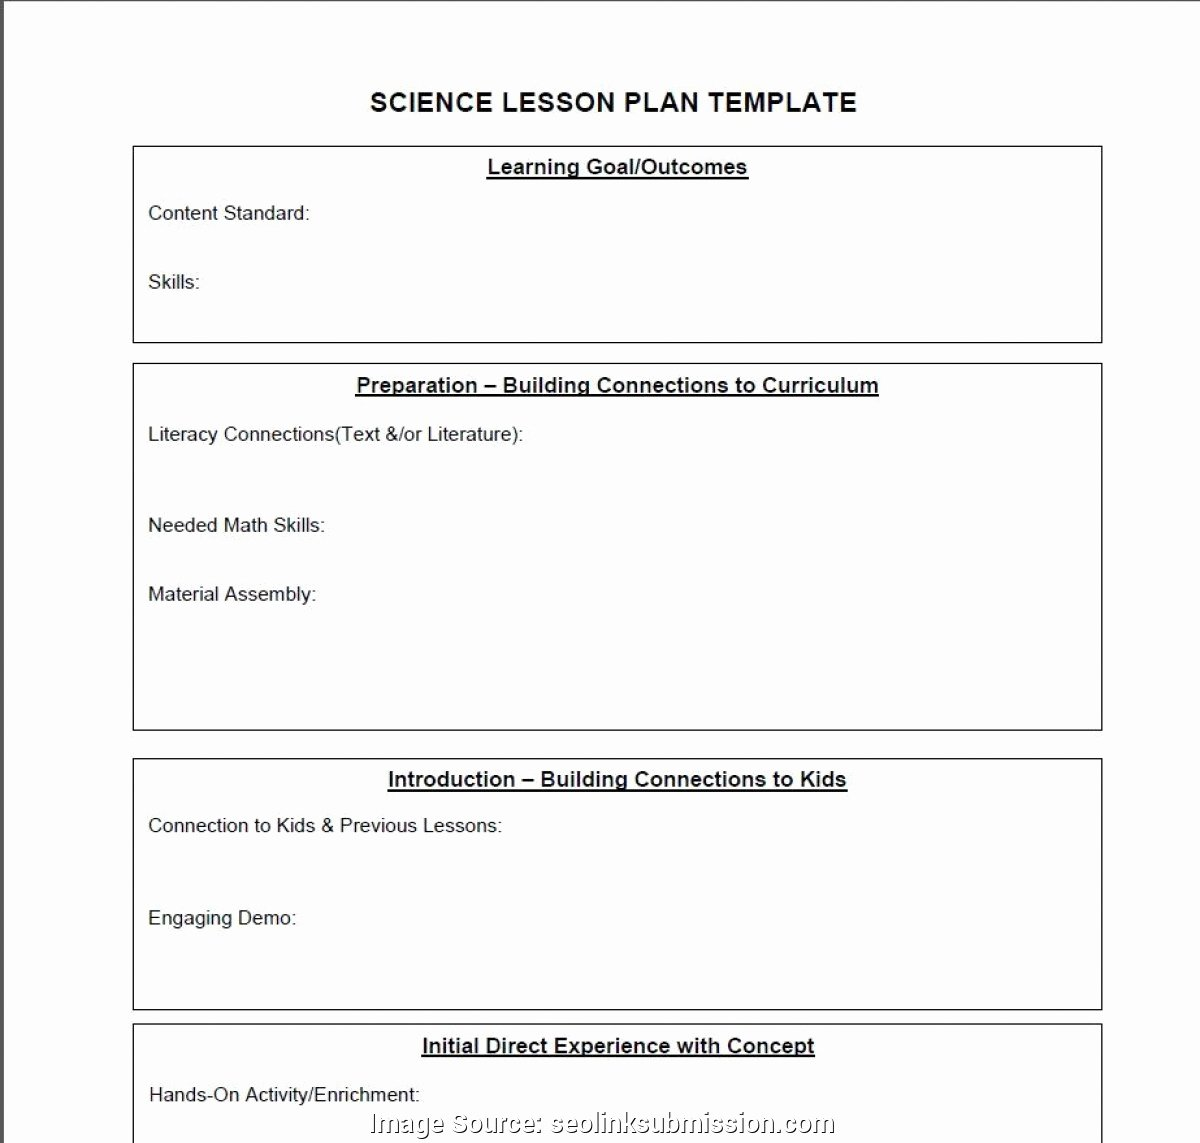 Five E Lesson Plan Template Luxury Best 5e Lesson Plan Science Template 7 5 E Lesson Plan